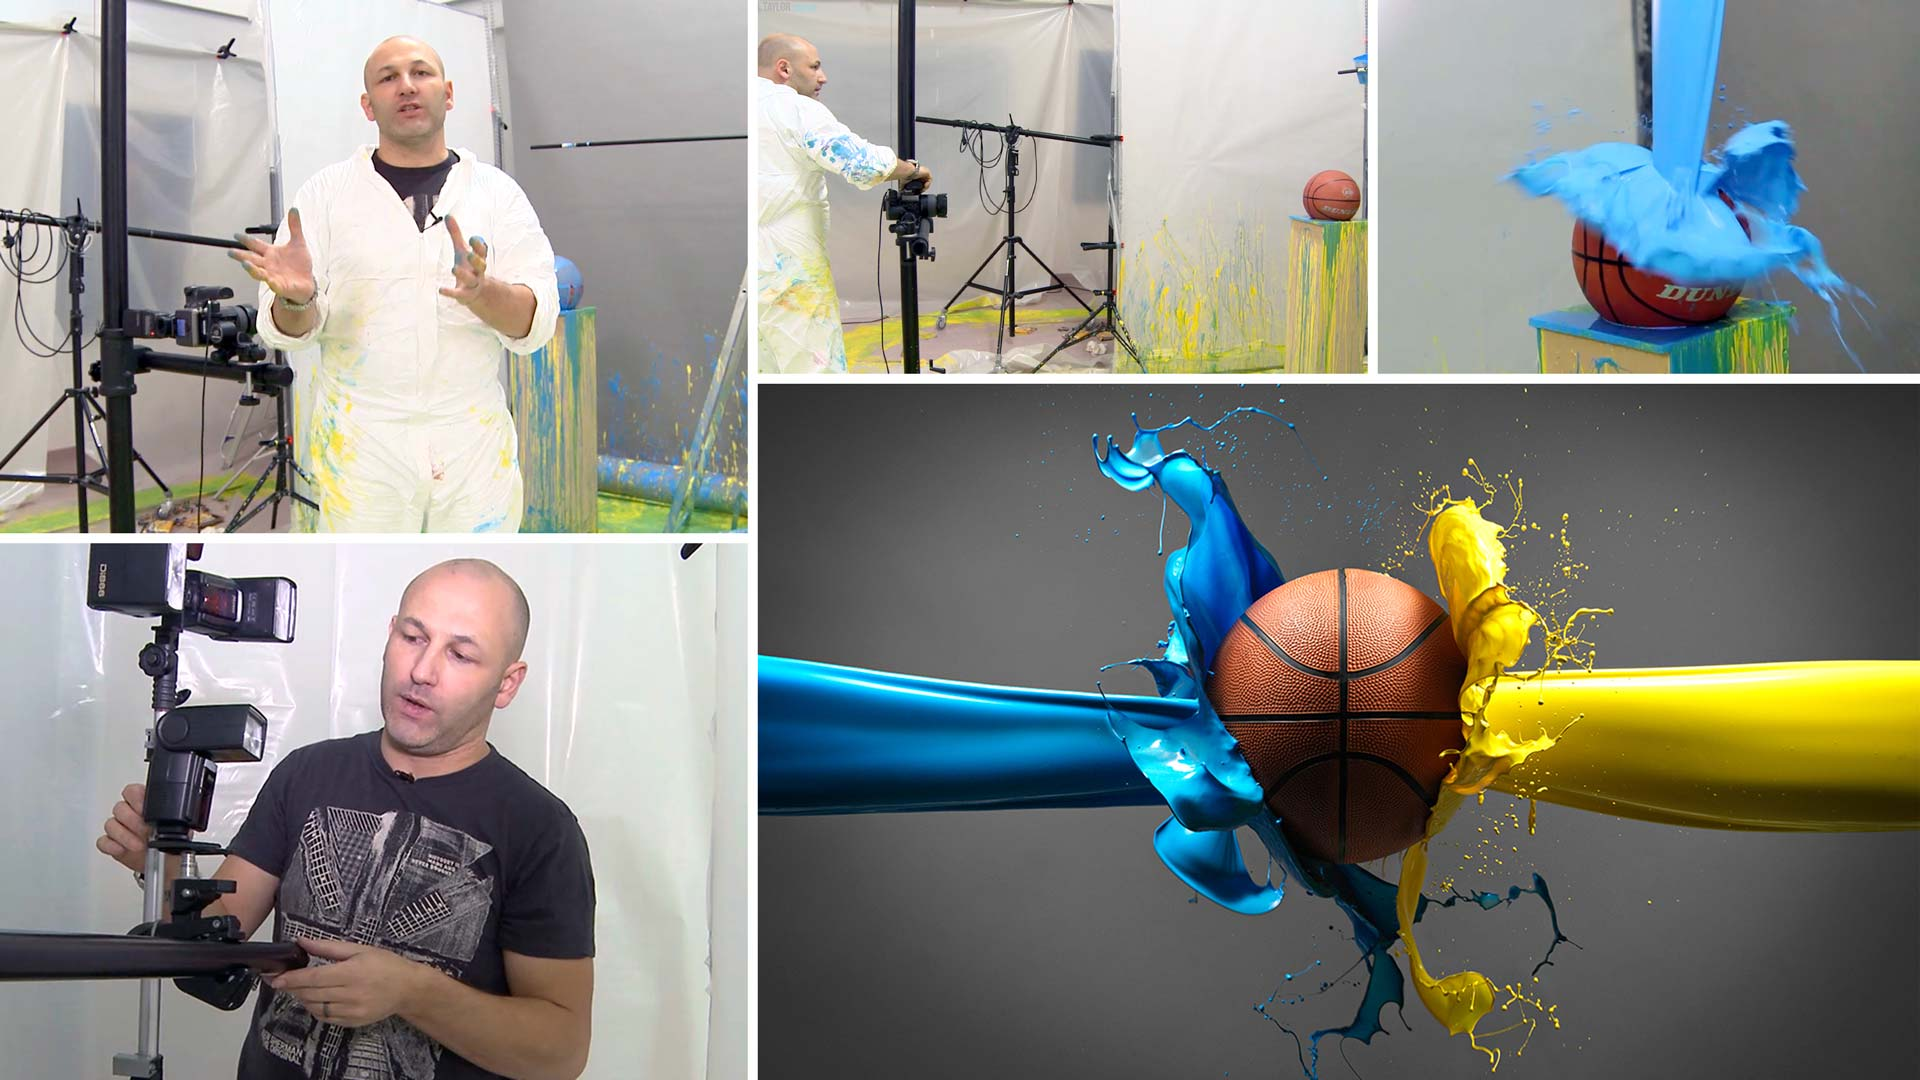 Sports product shoot with paint splash